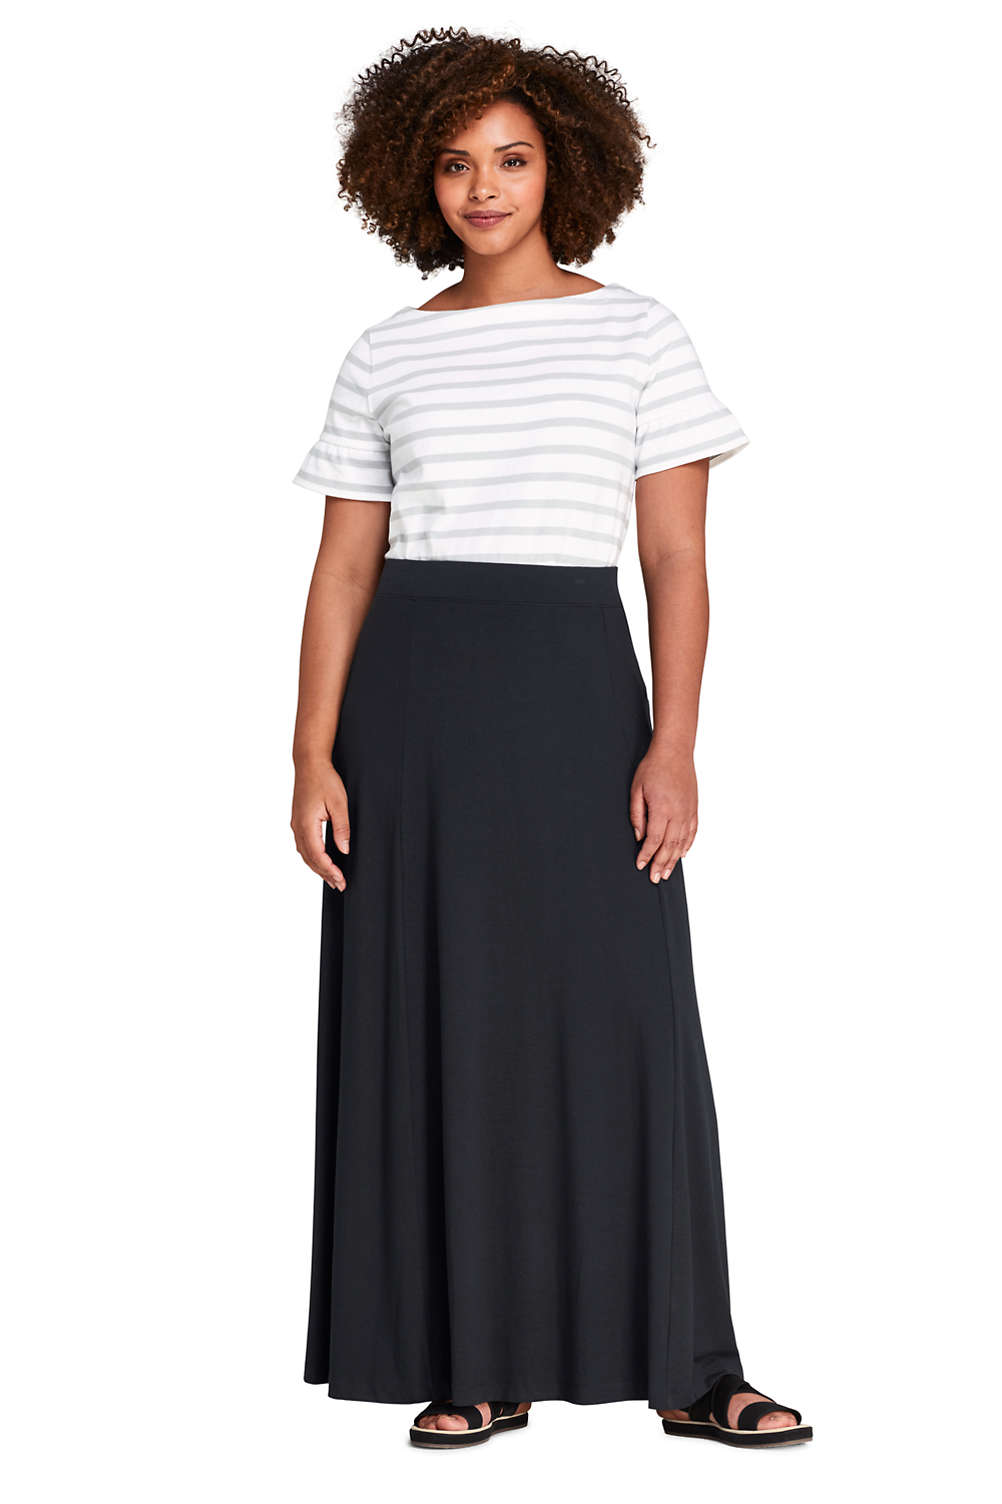 e3f0431e201 Women s Plus Size Maxi Skirt from Lands  End